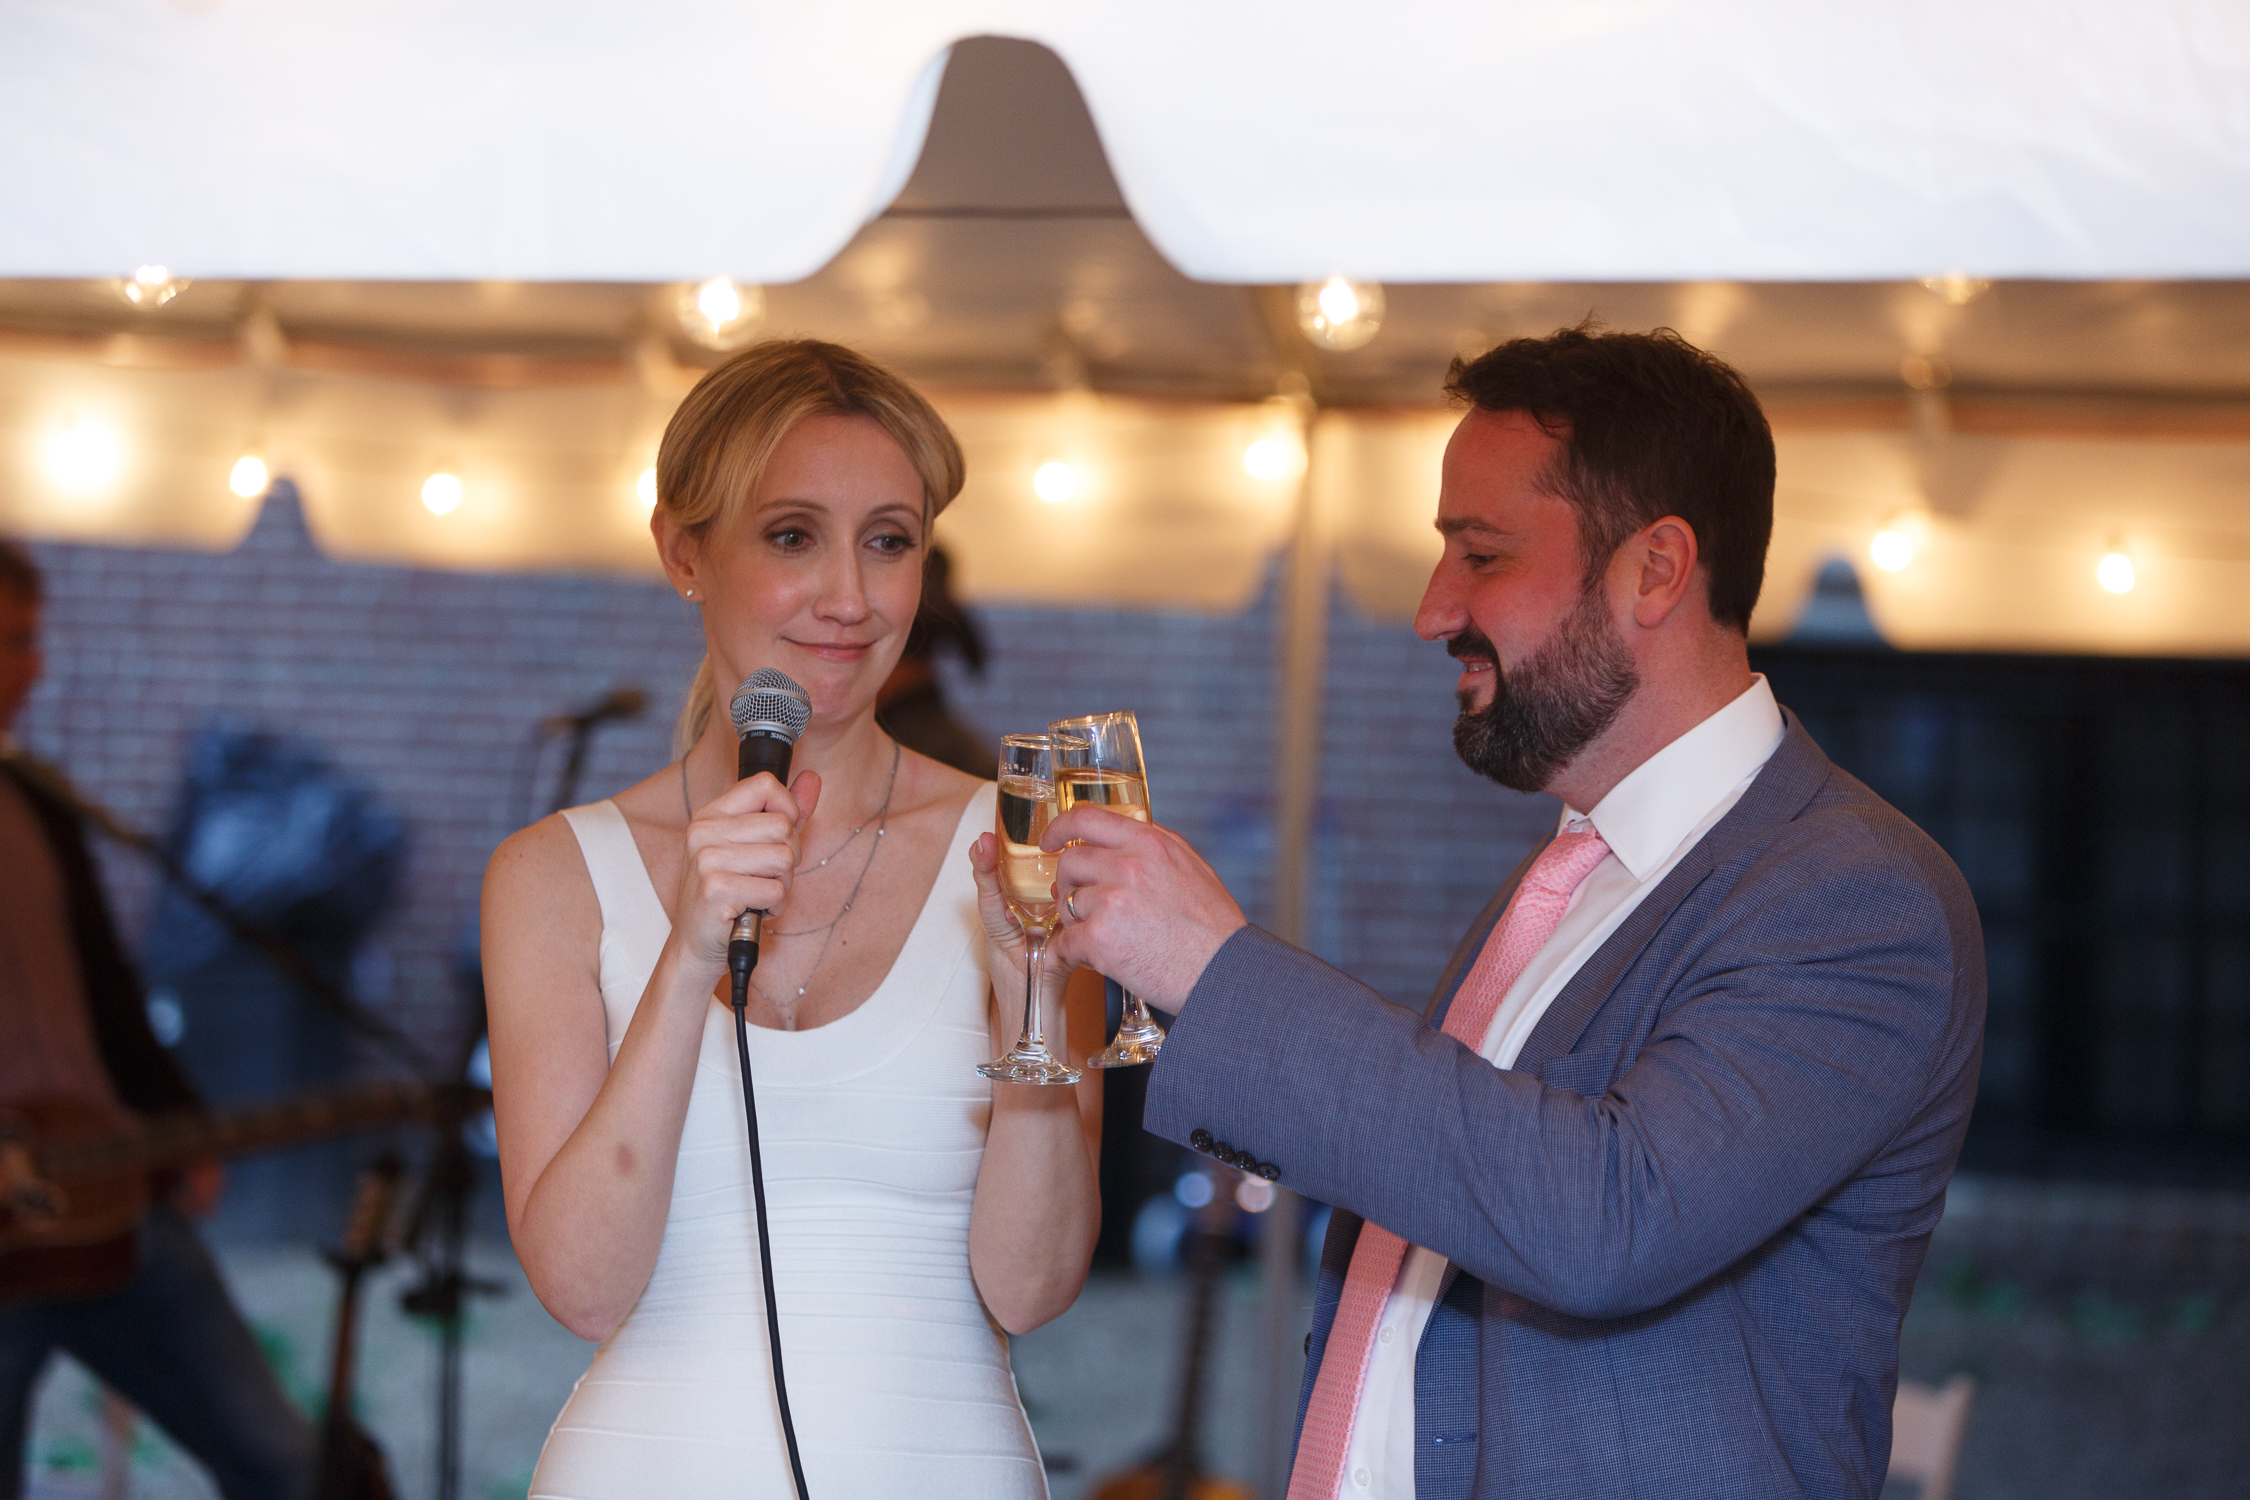 Brooklyn Wedding Photographer _ Jonathan Heisler _ 5112019 _028.jpg